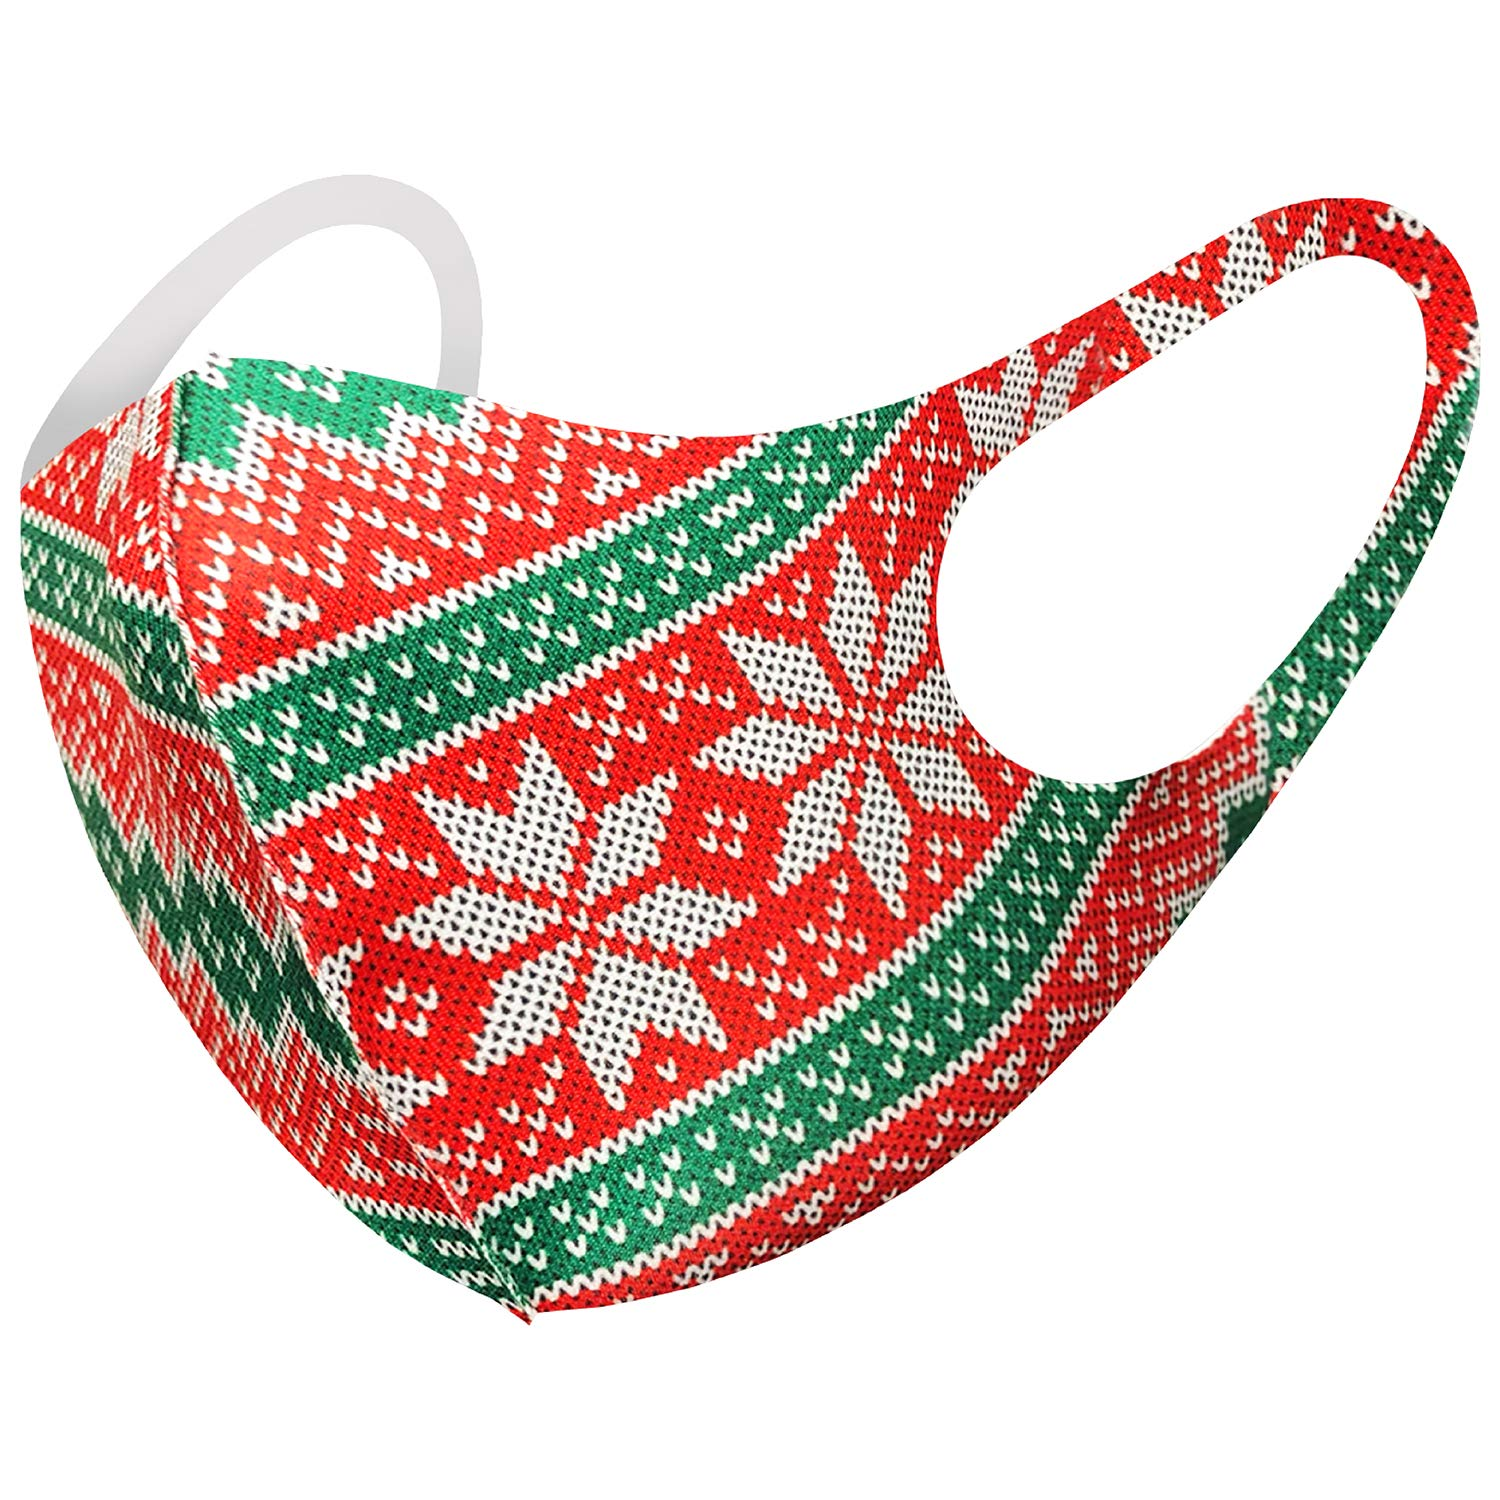 Christmas Snow Flake Reindeers Holiday Themed Unisex Adult Kids Fashion Face Covering, Reusable, Dust Proof, Washable (Pack of 1, Adult M68)